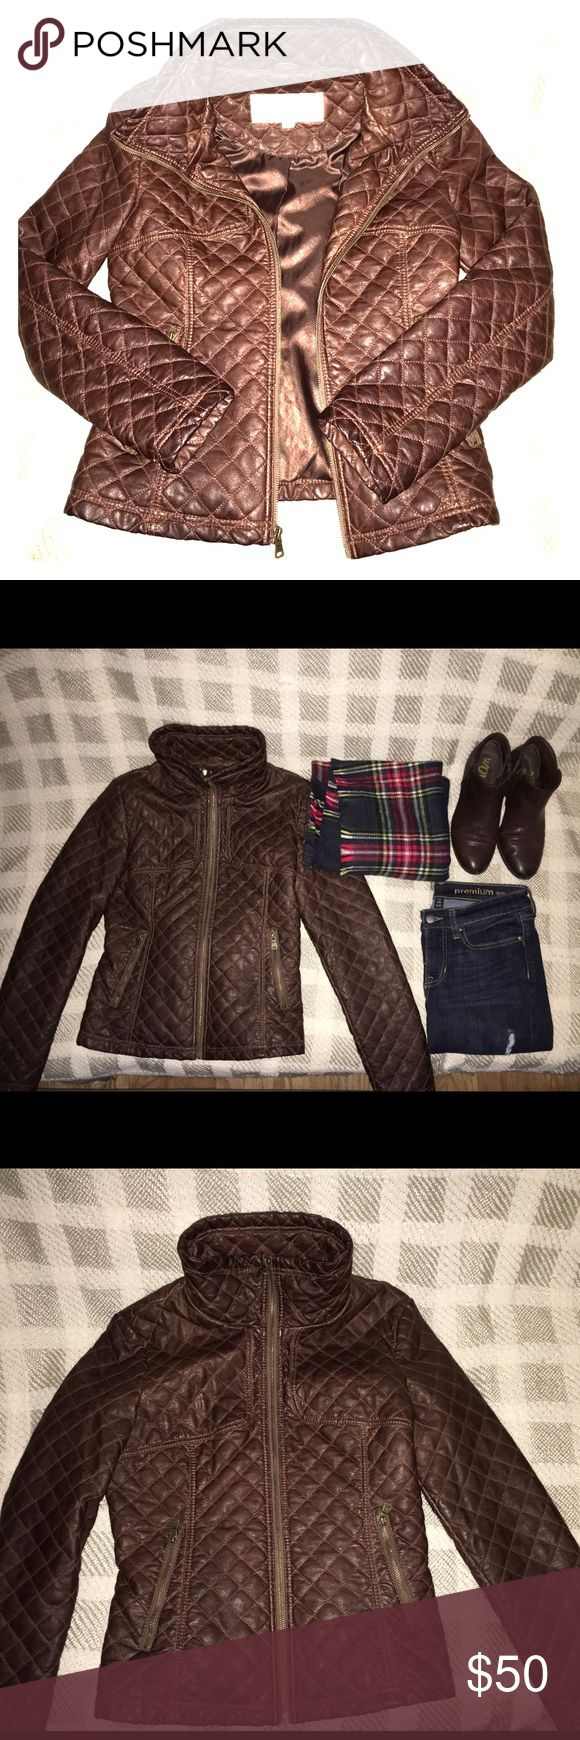 Jessica Simpson Coat Jessica Simpson coat perfect for the Fall season.  Gorgeous brown color to wear with everything.  Perfect condition! Jessica Simpson Jackets & Coats